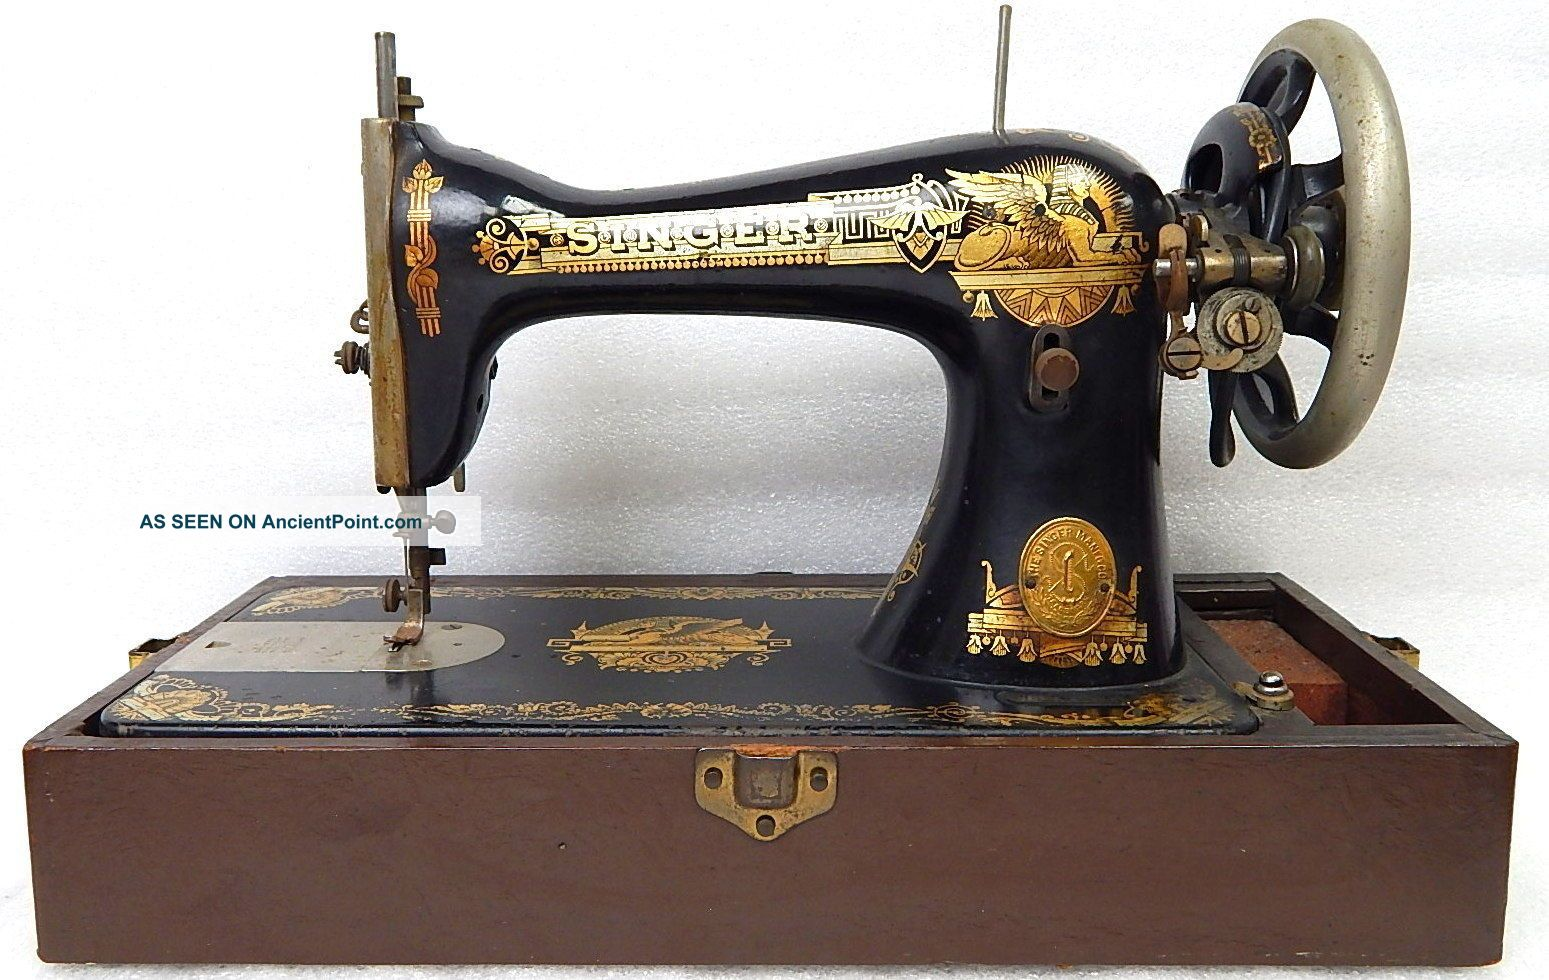 Antique Singer Egyptian Golden Sphinx Model 15 66 Sewing Machine C 1908 Sewing Machines photo